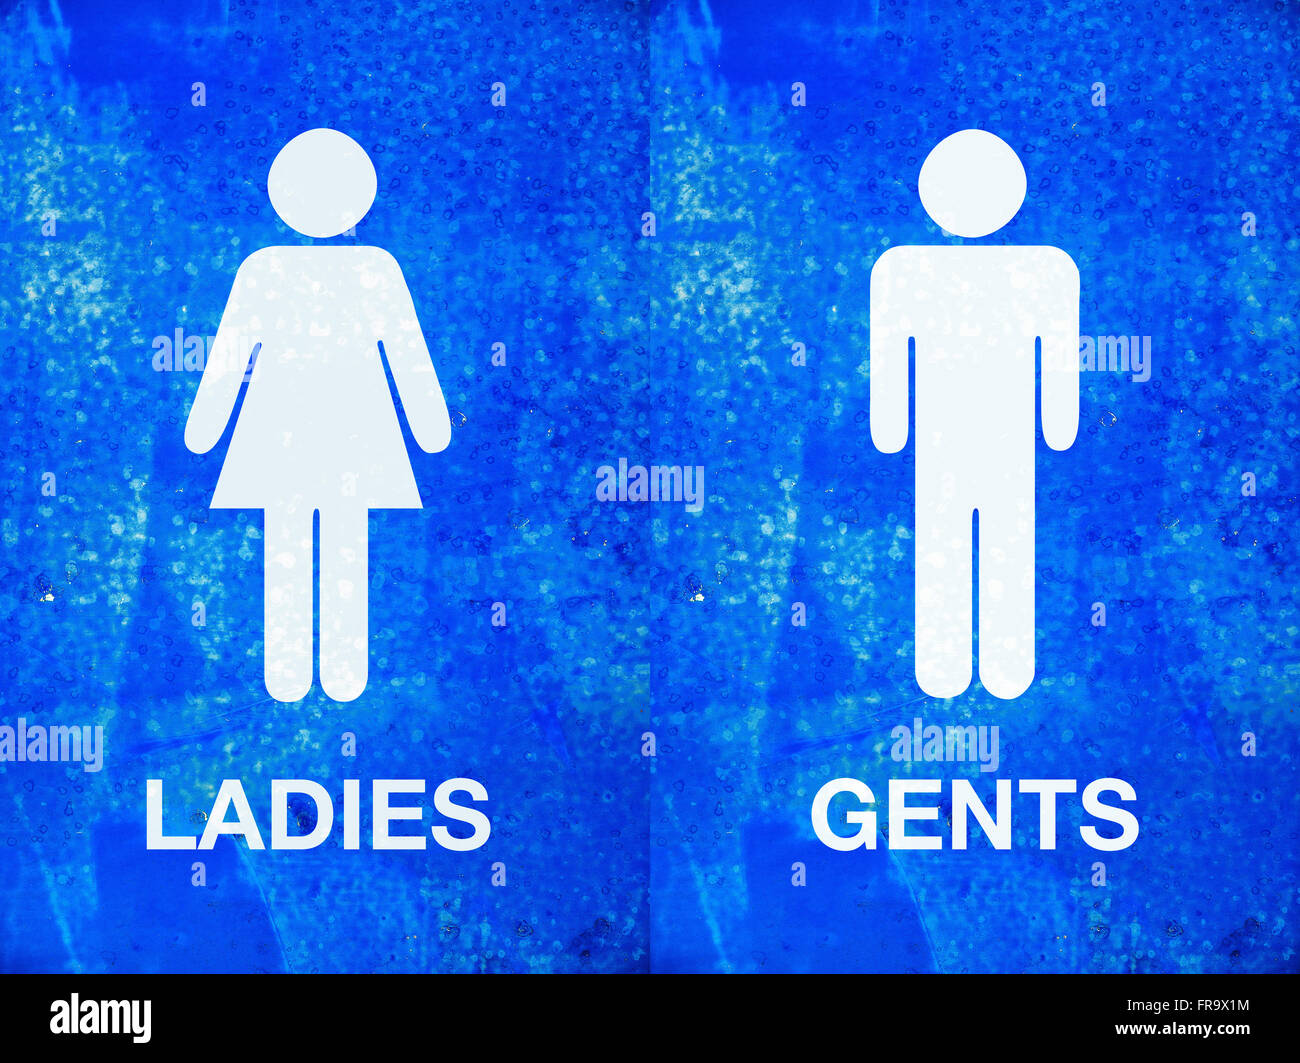 Ladies and gentlemen toilet sign on blue painted grunge texture - Stock Image